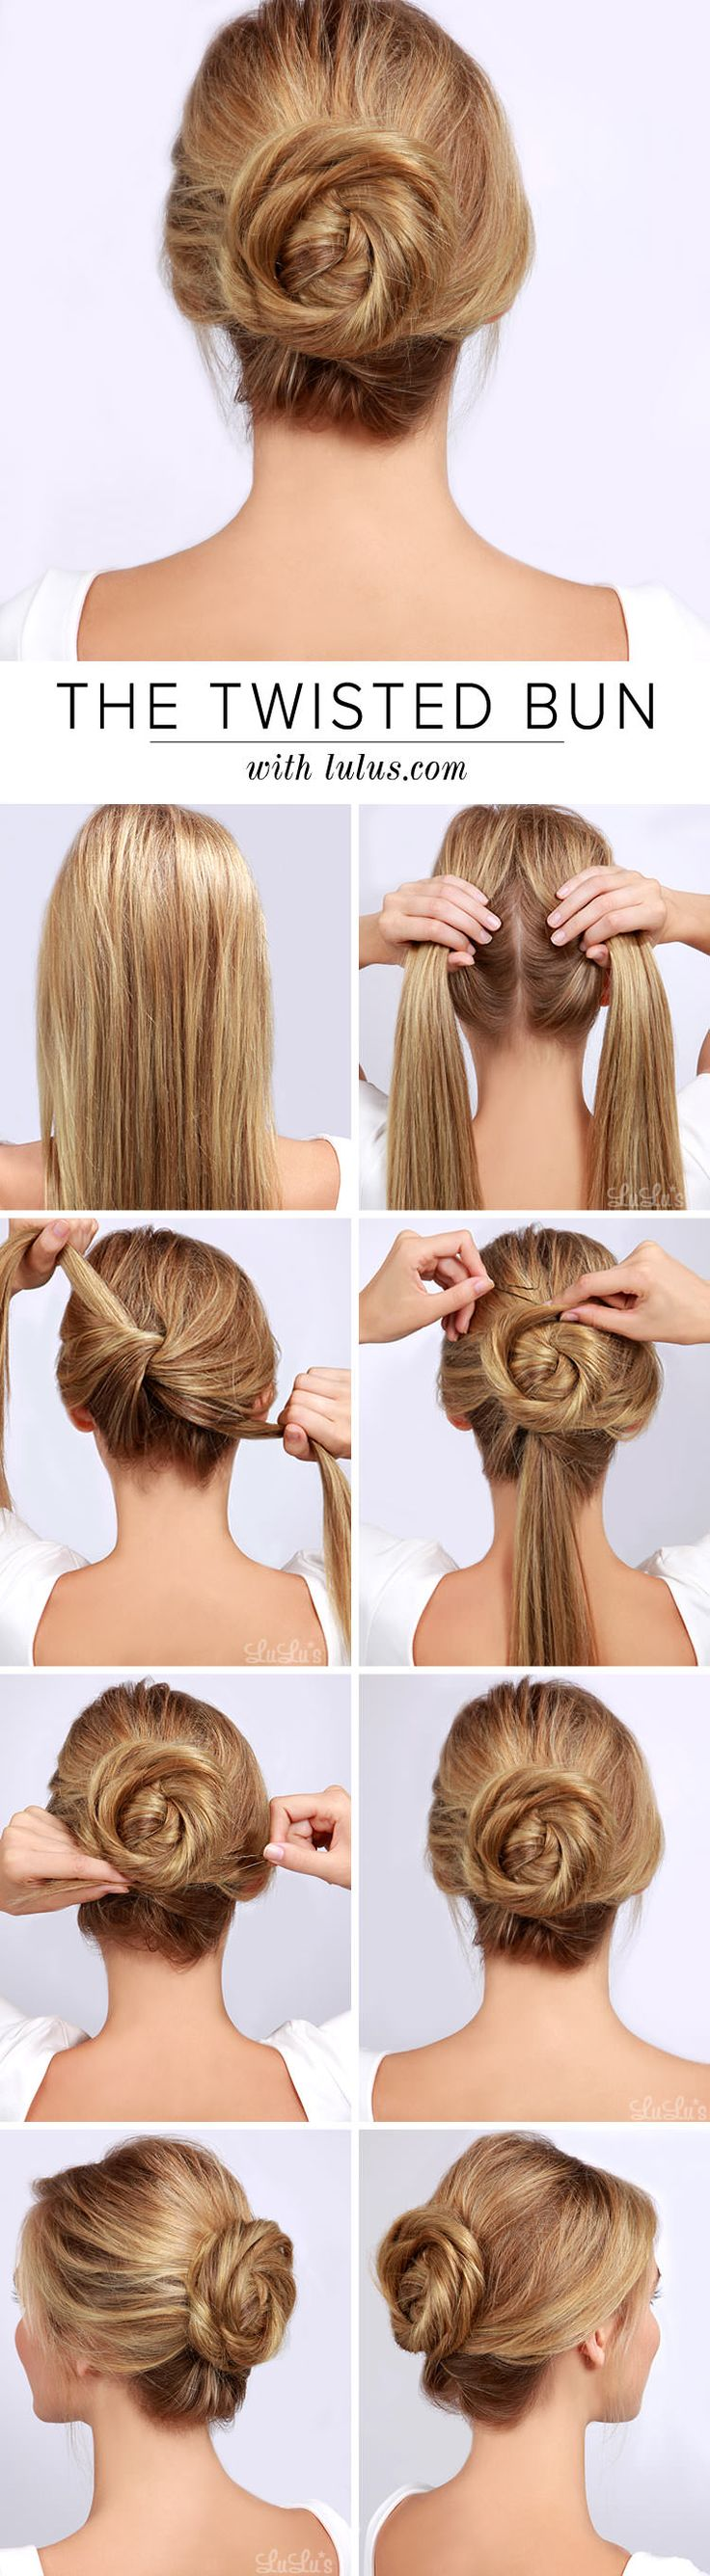 Super 1000 Ideas About Cute Simple Hairstyles On Pinterest Simple Short Hairstyles Gunalazisus